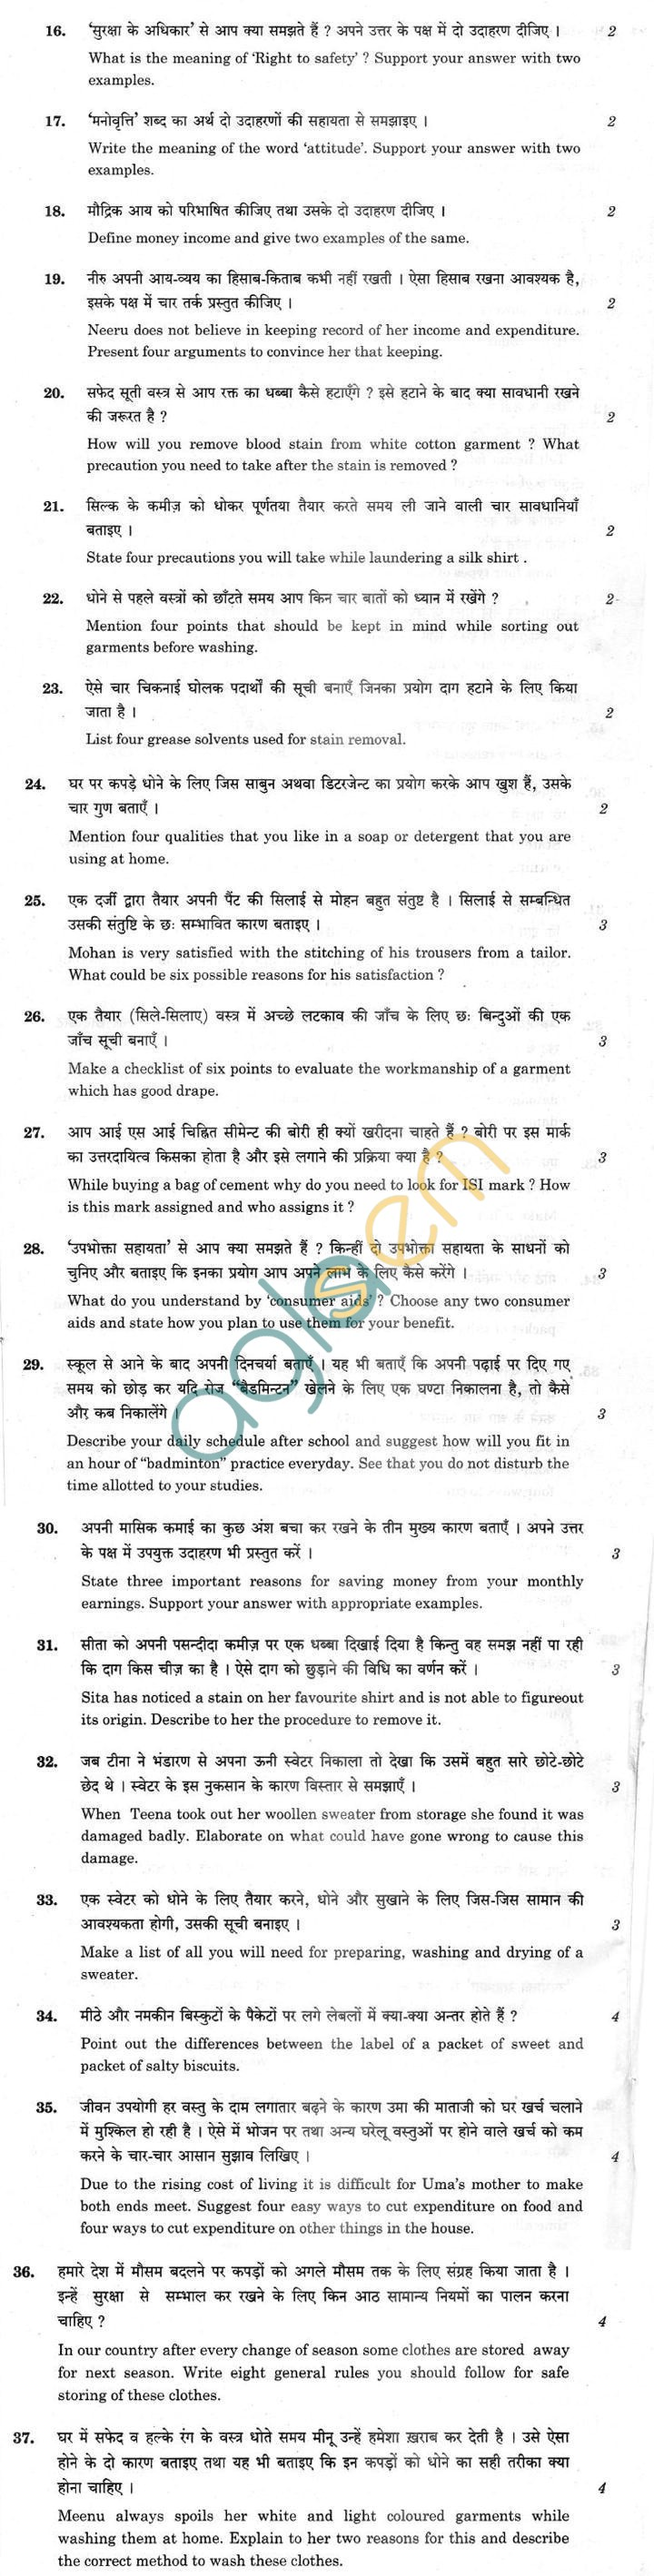 CBSE Compartment Exam 2013 Class X Question Paper - Home Science